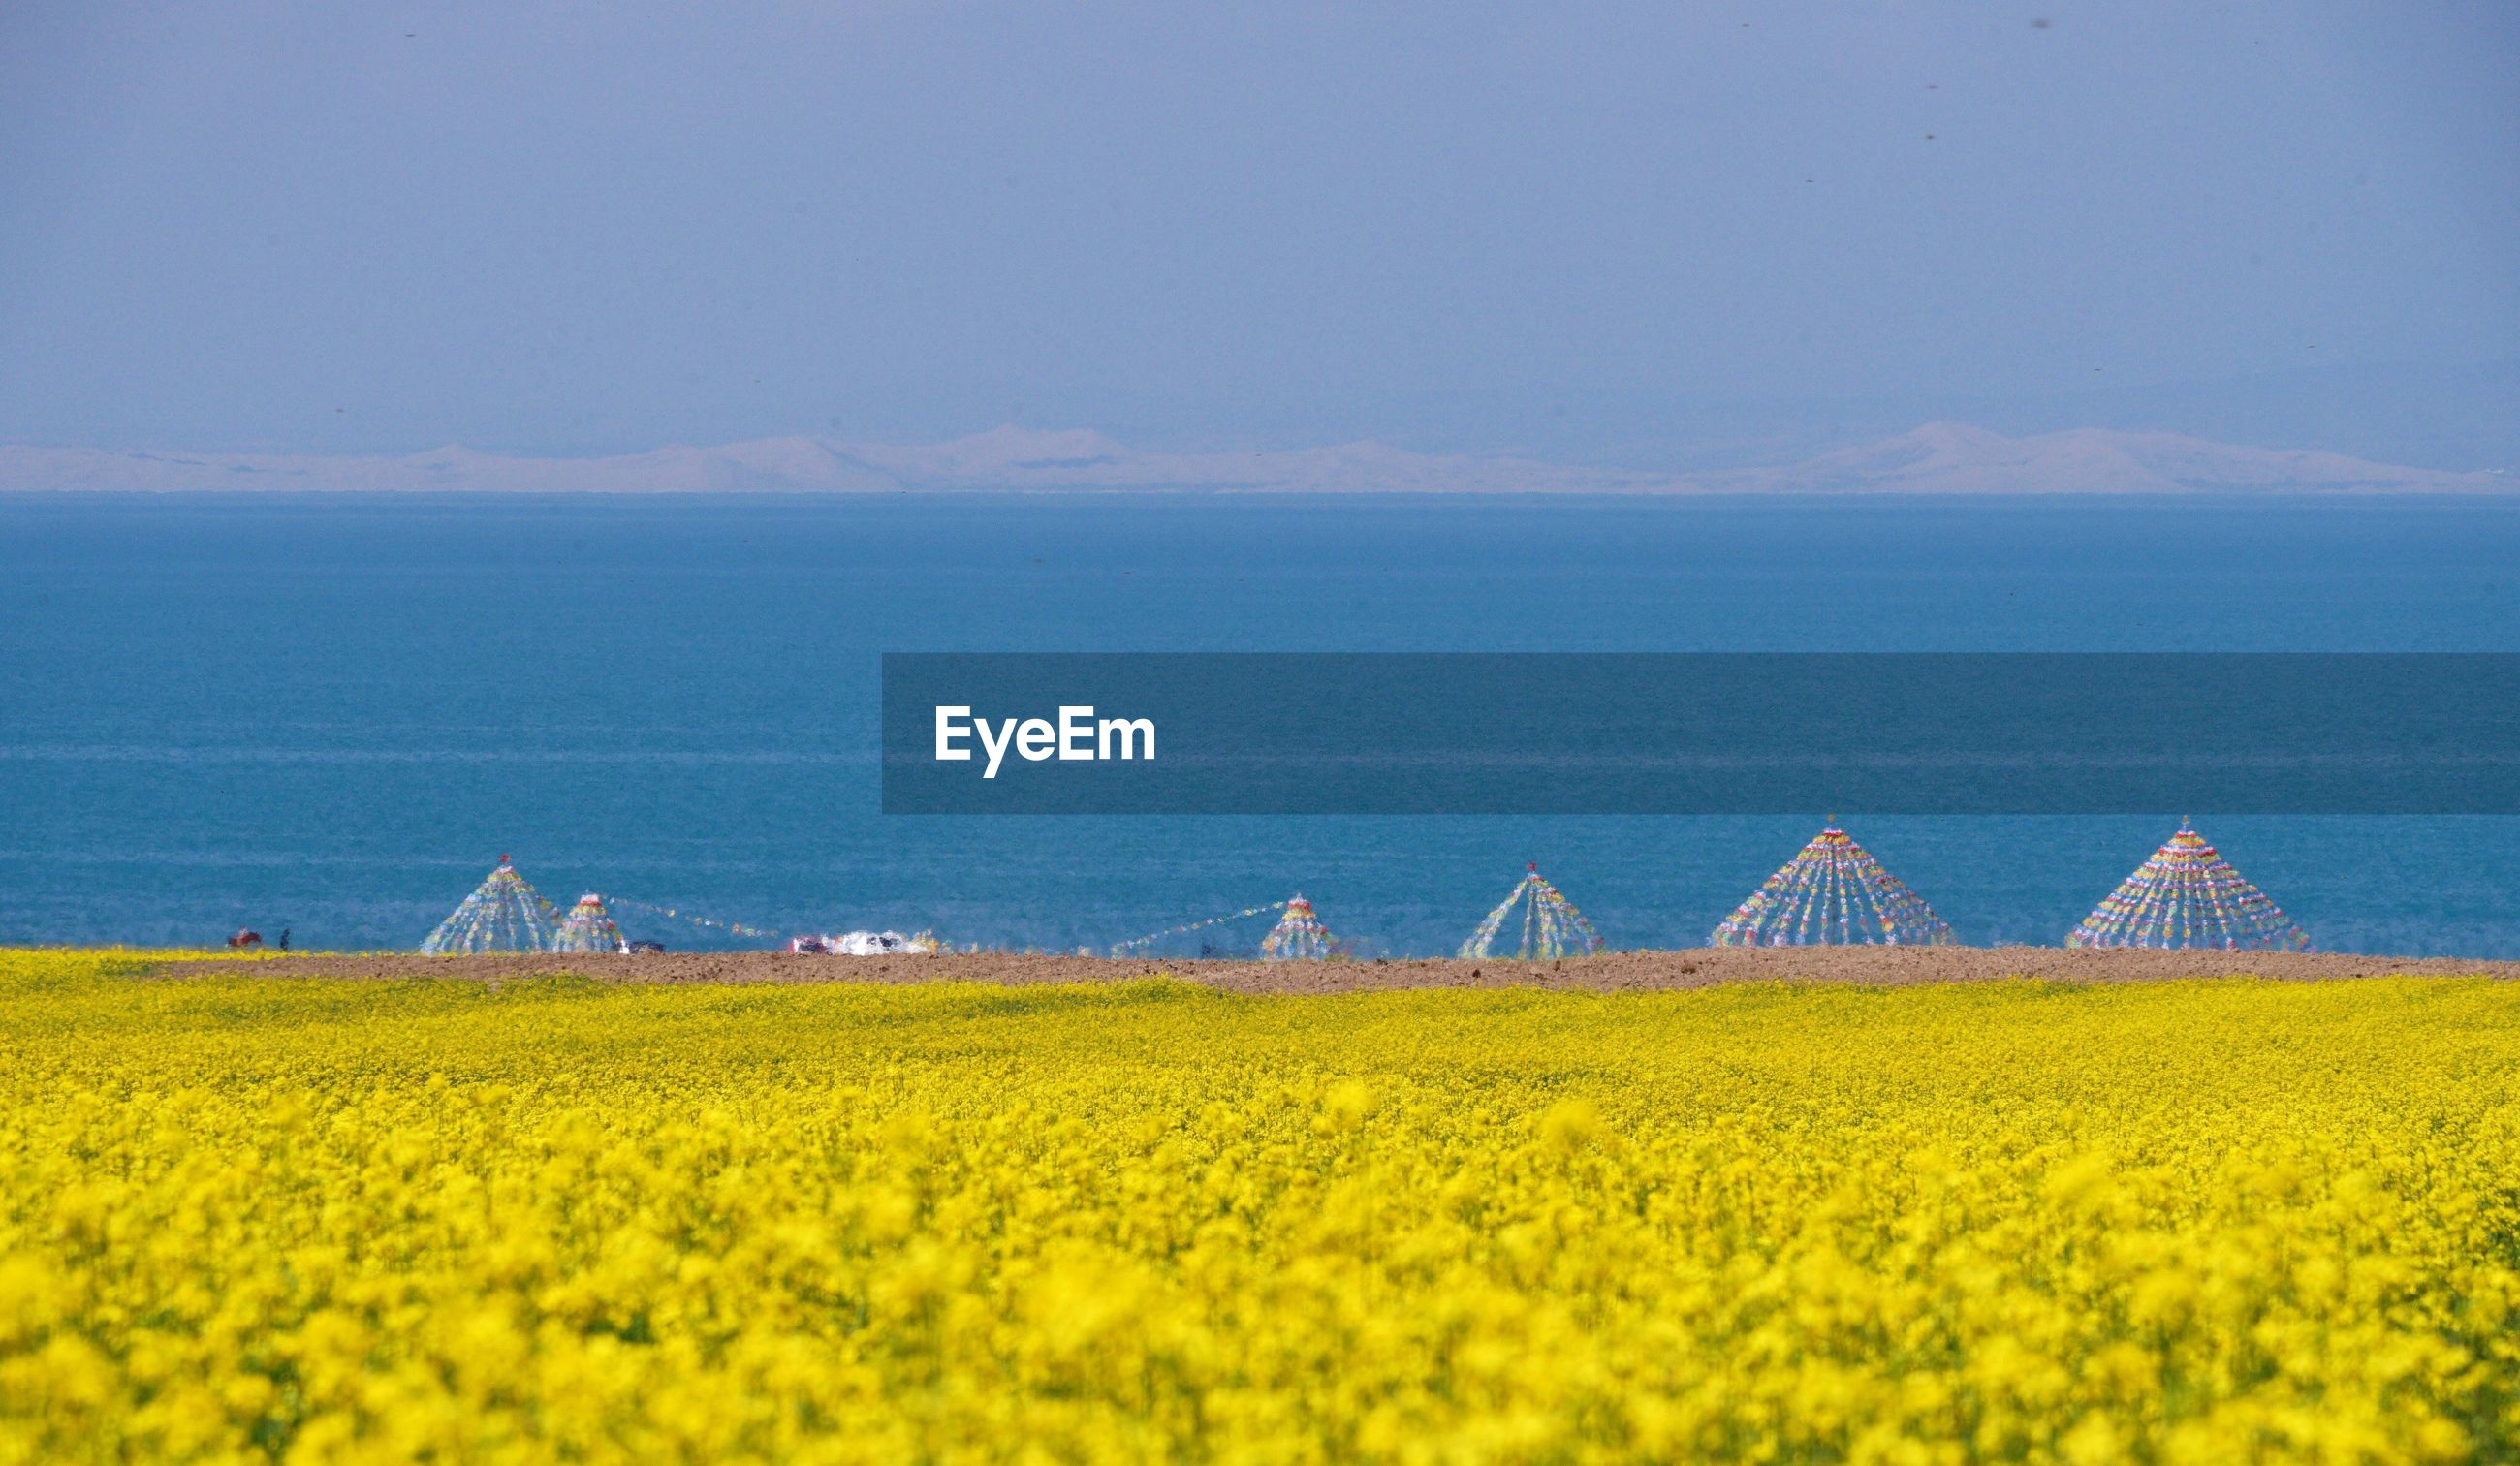 Scenic view of oilseed rape field by qinghai lake against sky